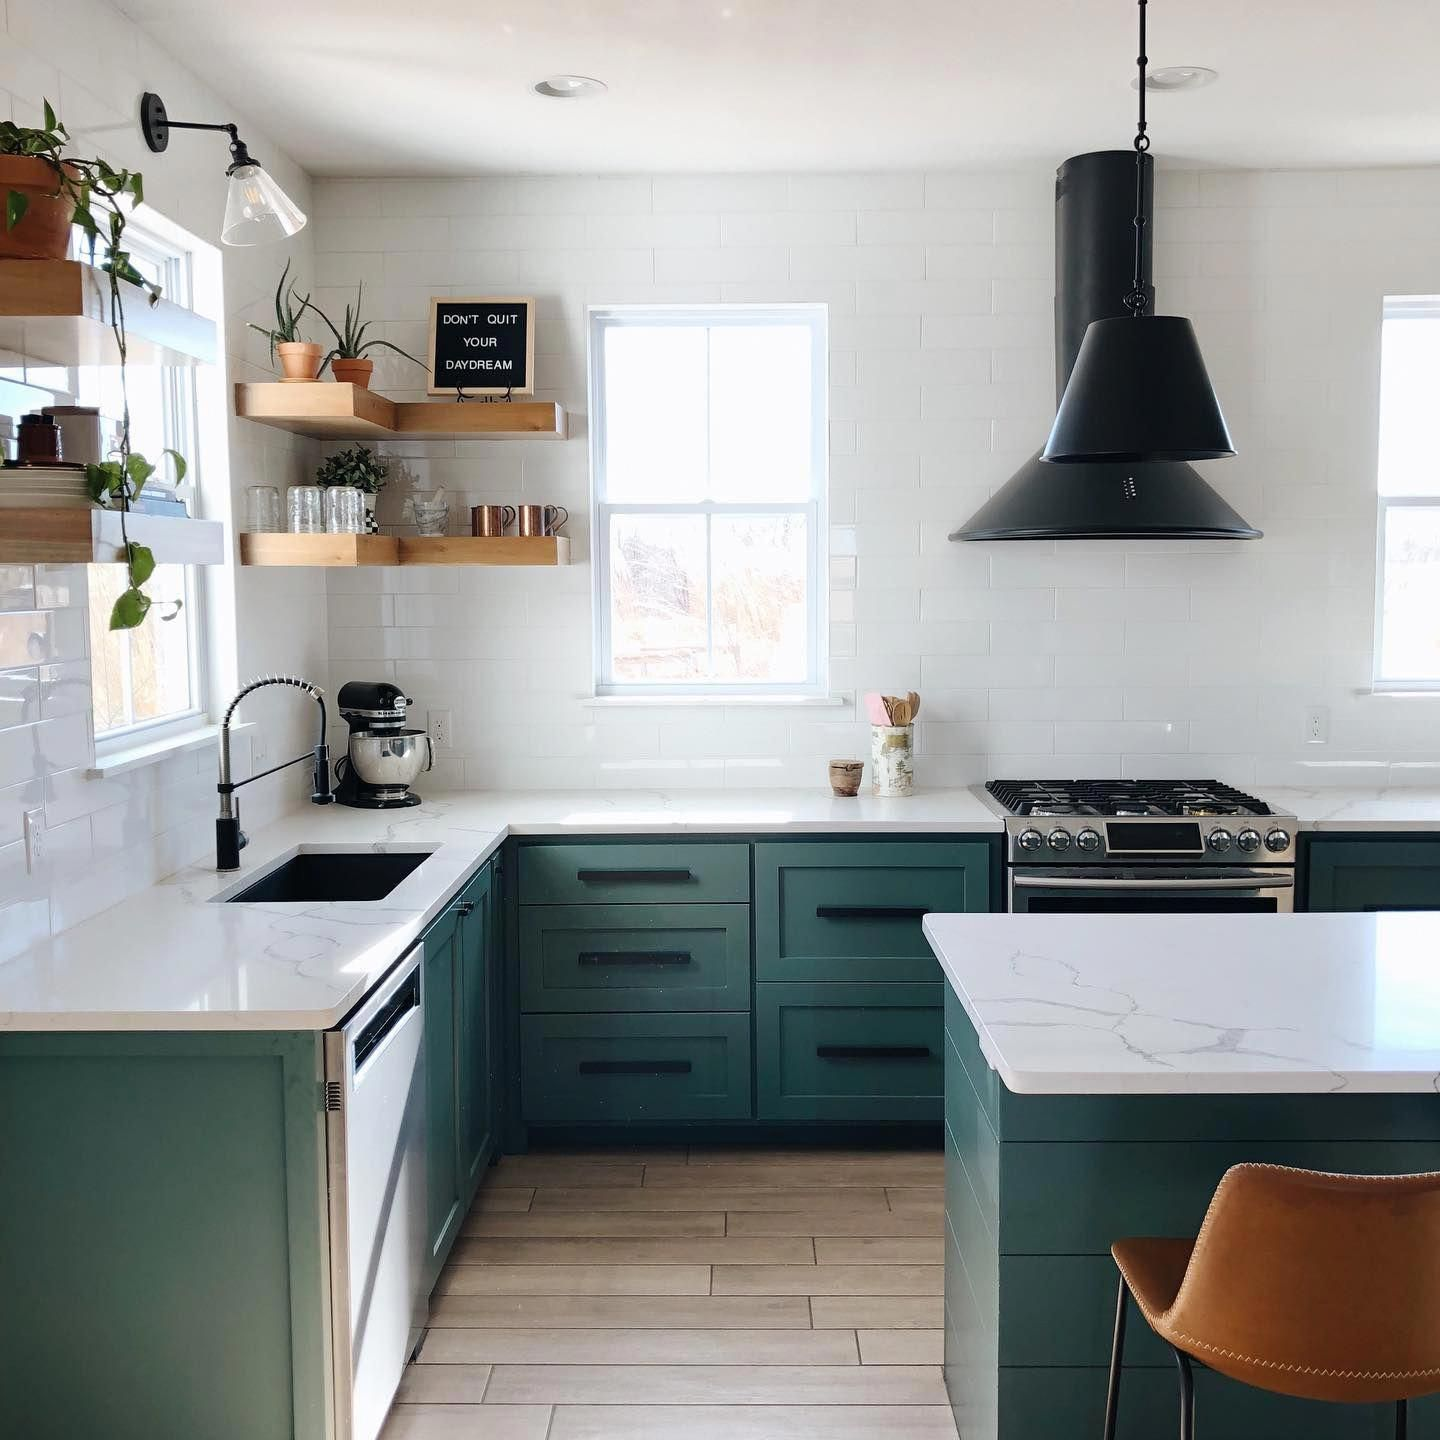 Kent Counter Stool In 2020 Green Kitchen Cabinets Kitchen Interior Kitchen Cabinet Design